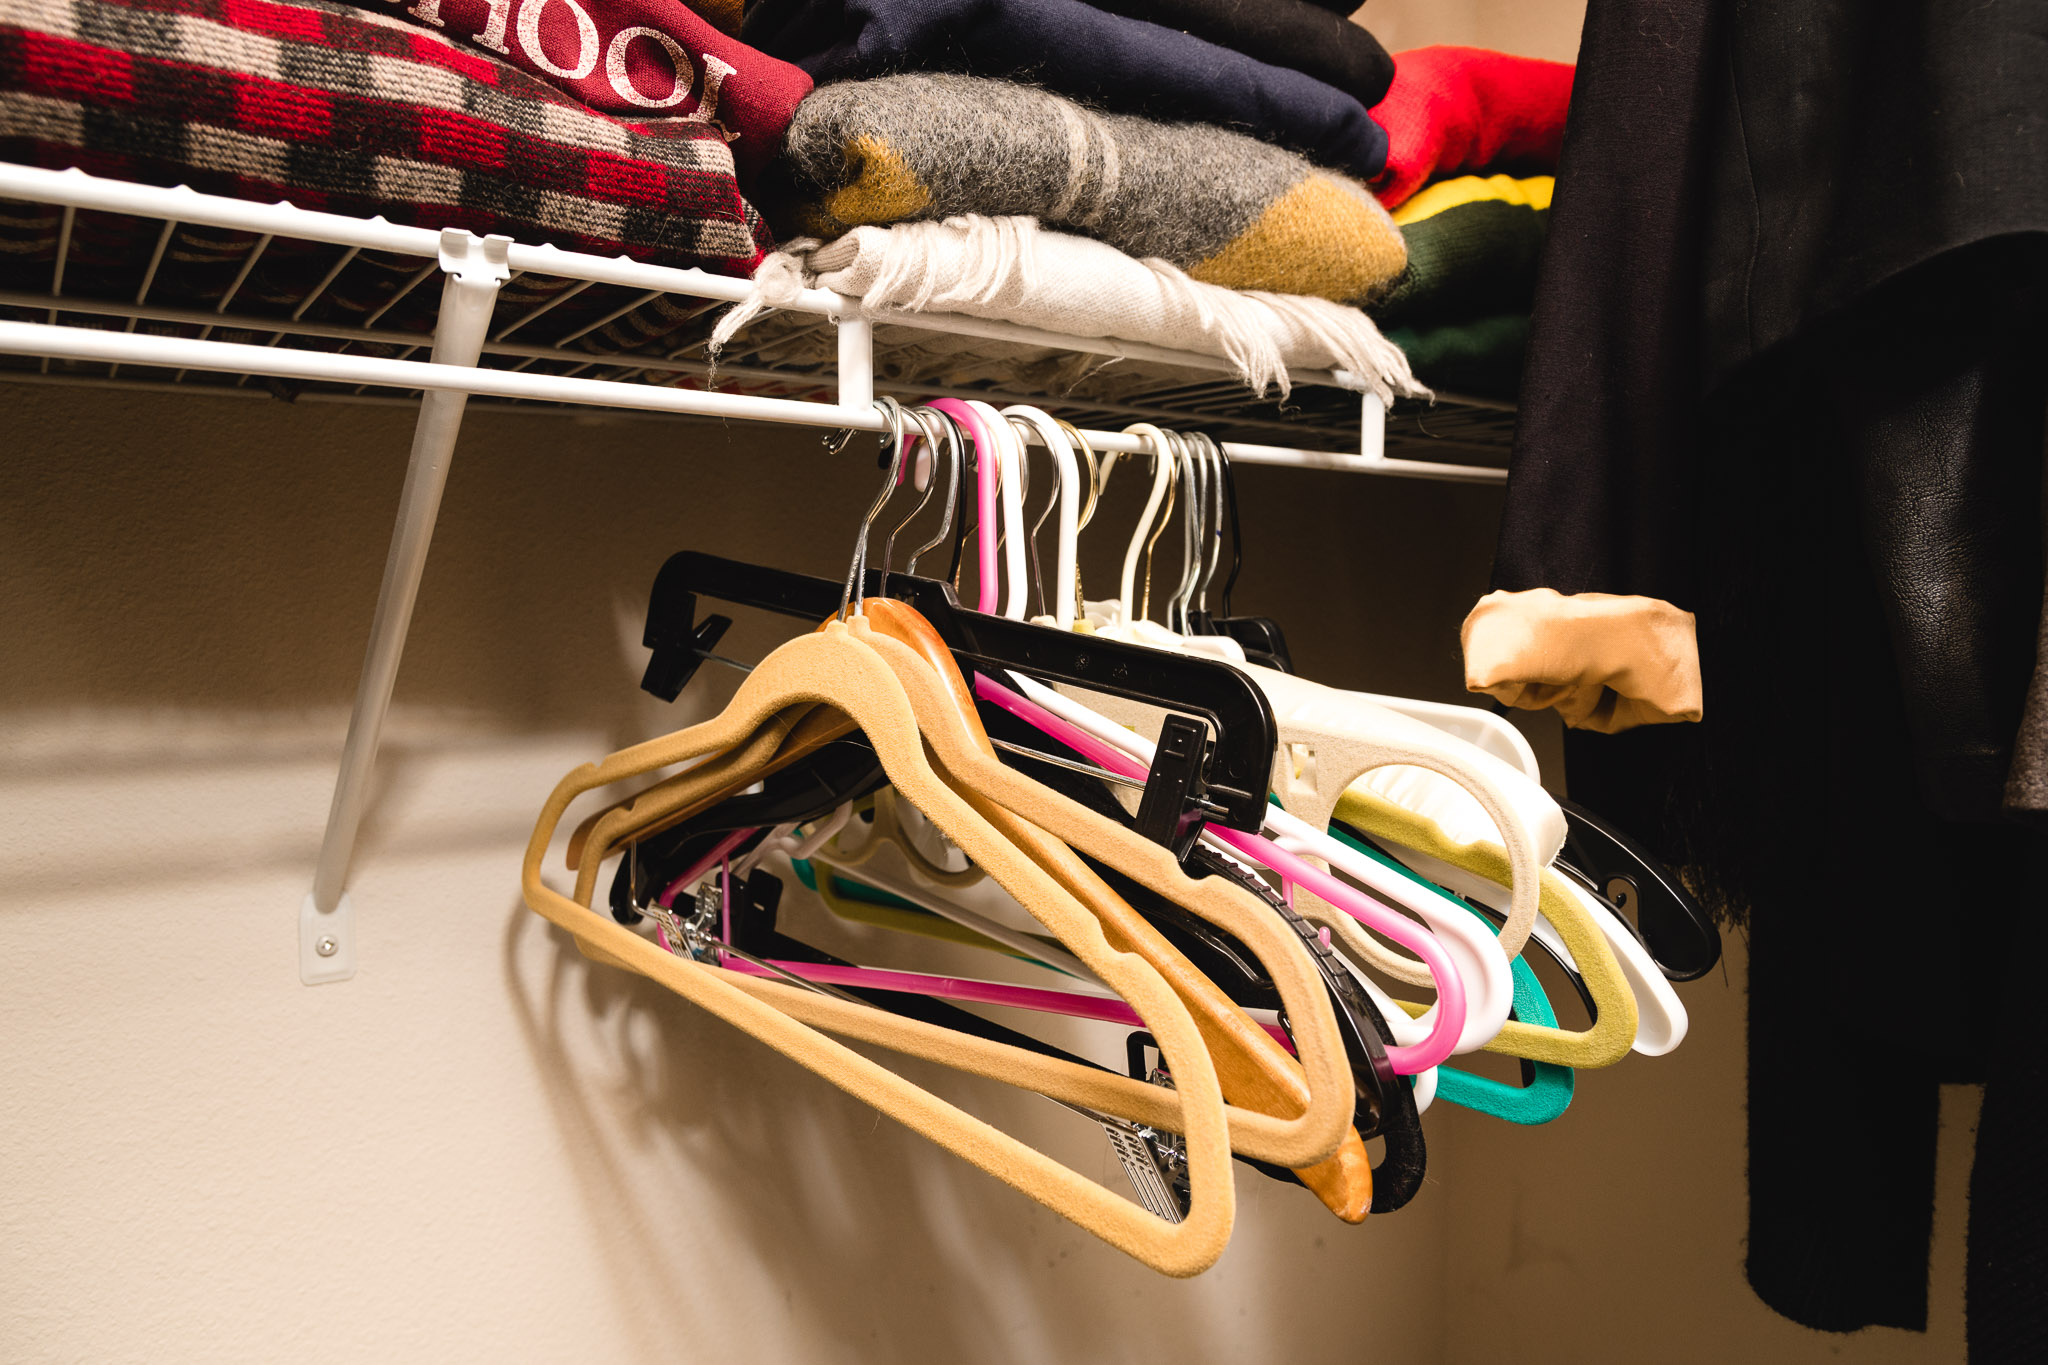 Empty hangers should have a space of their own.